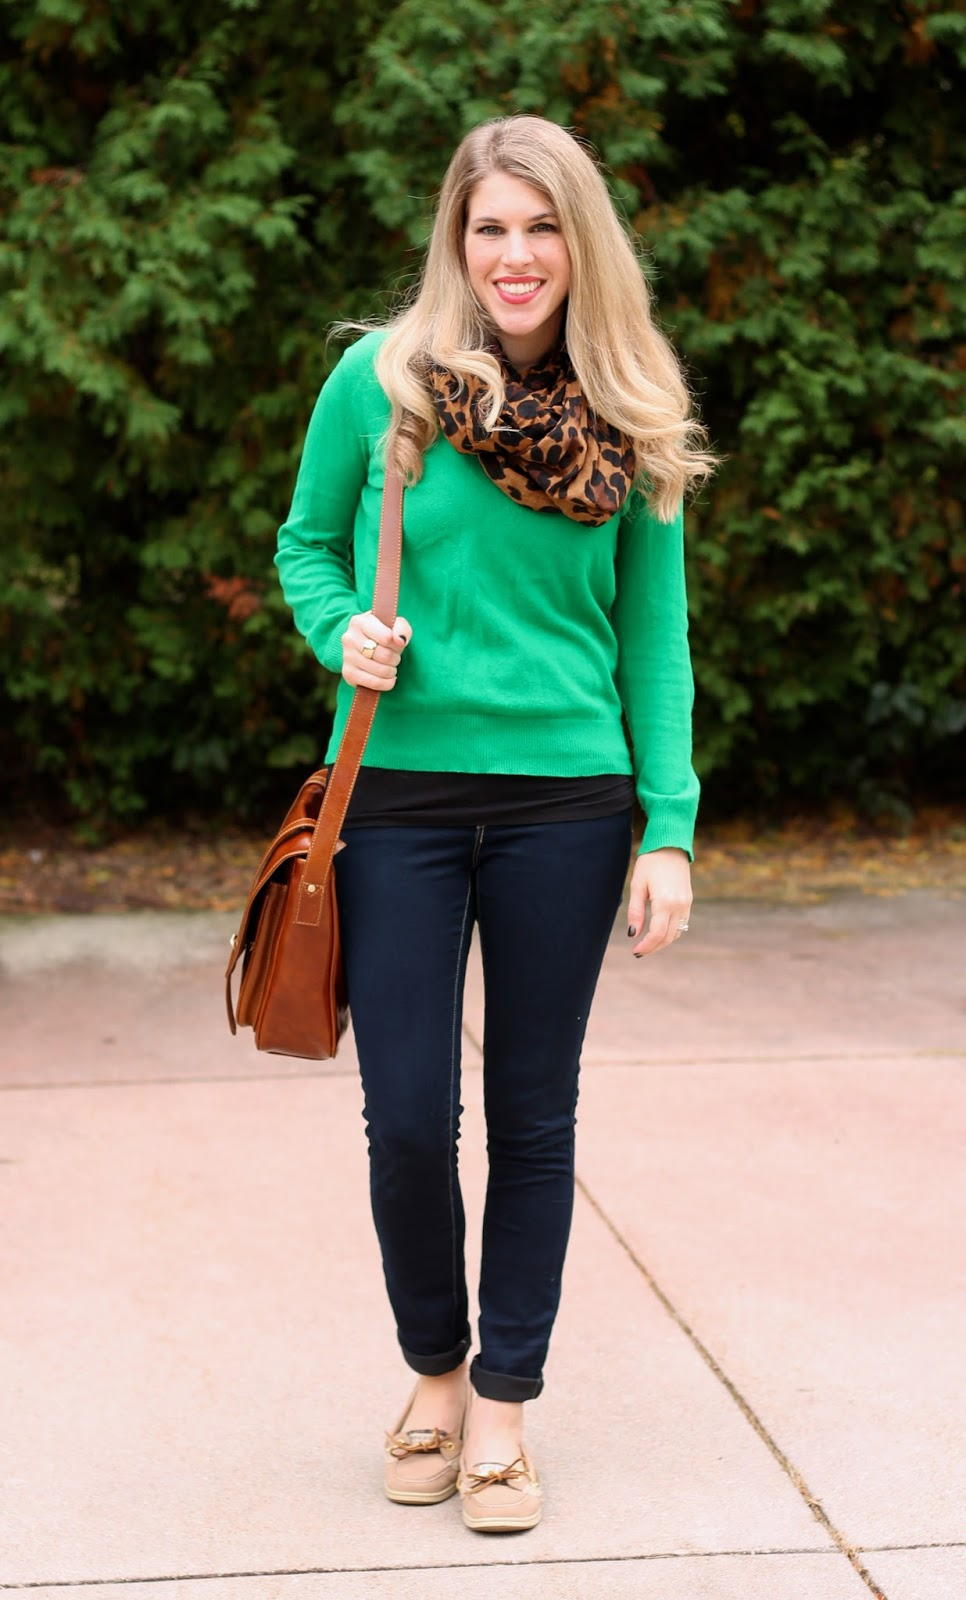 I do deClaire: The Perfect Fall Footwear